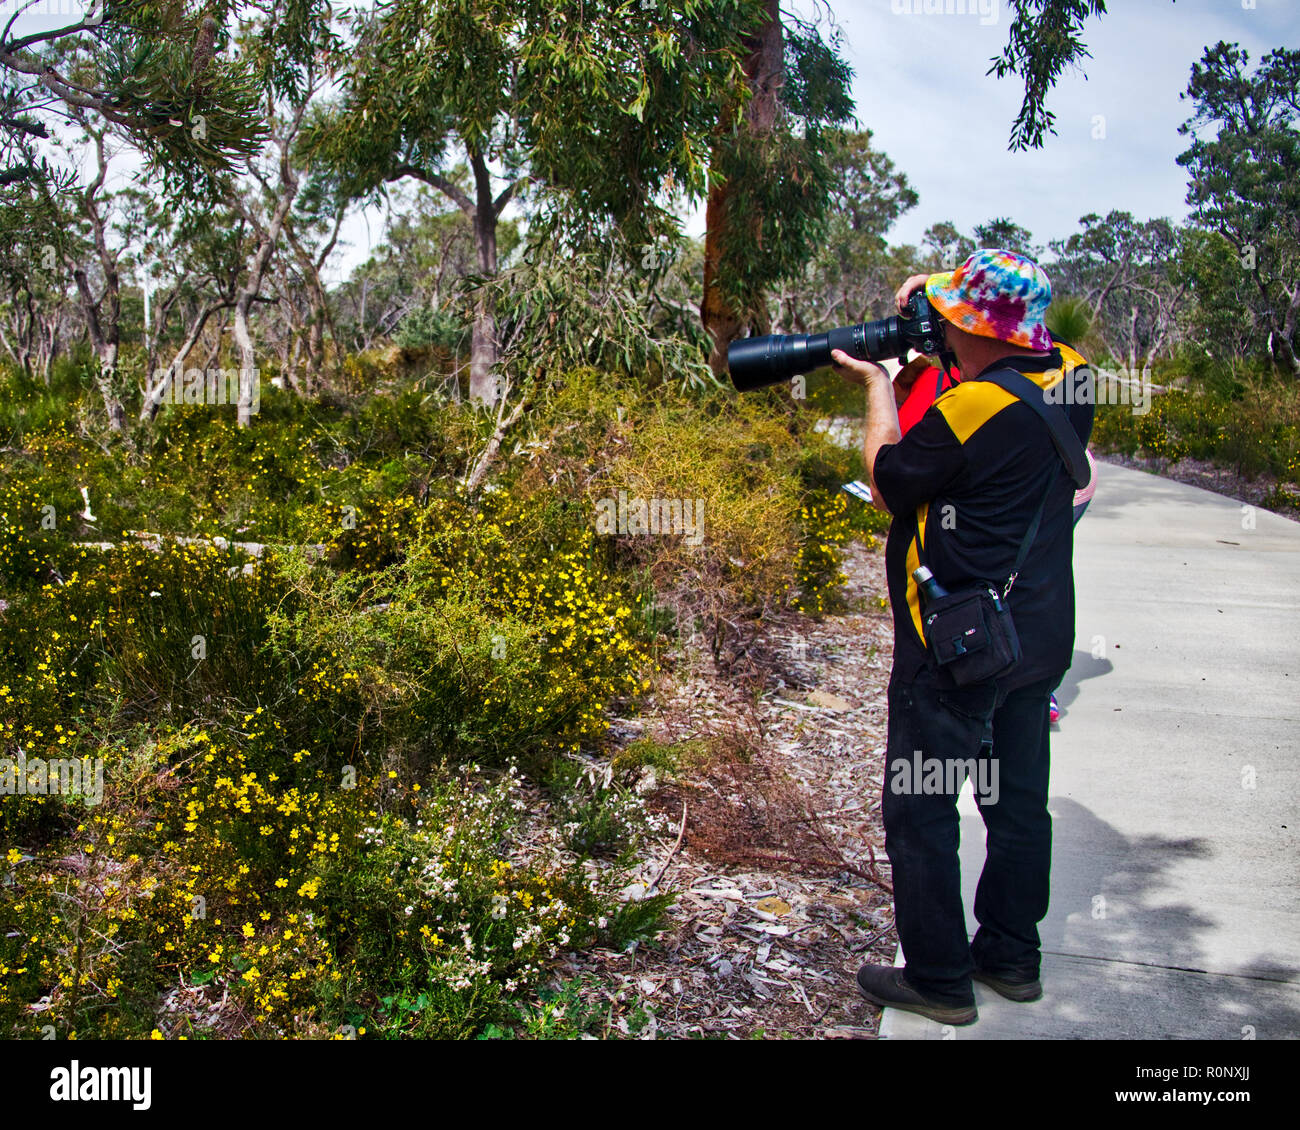 Experienced photographer brough telephoto lens to avoid invading the bush - Stock Image